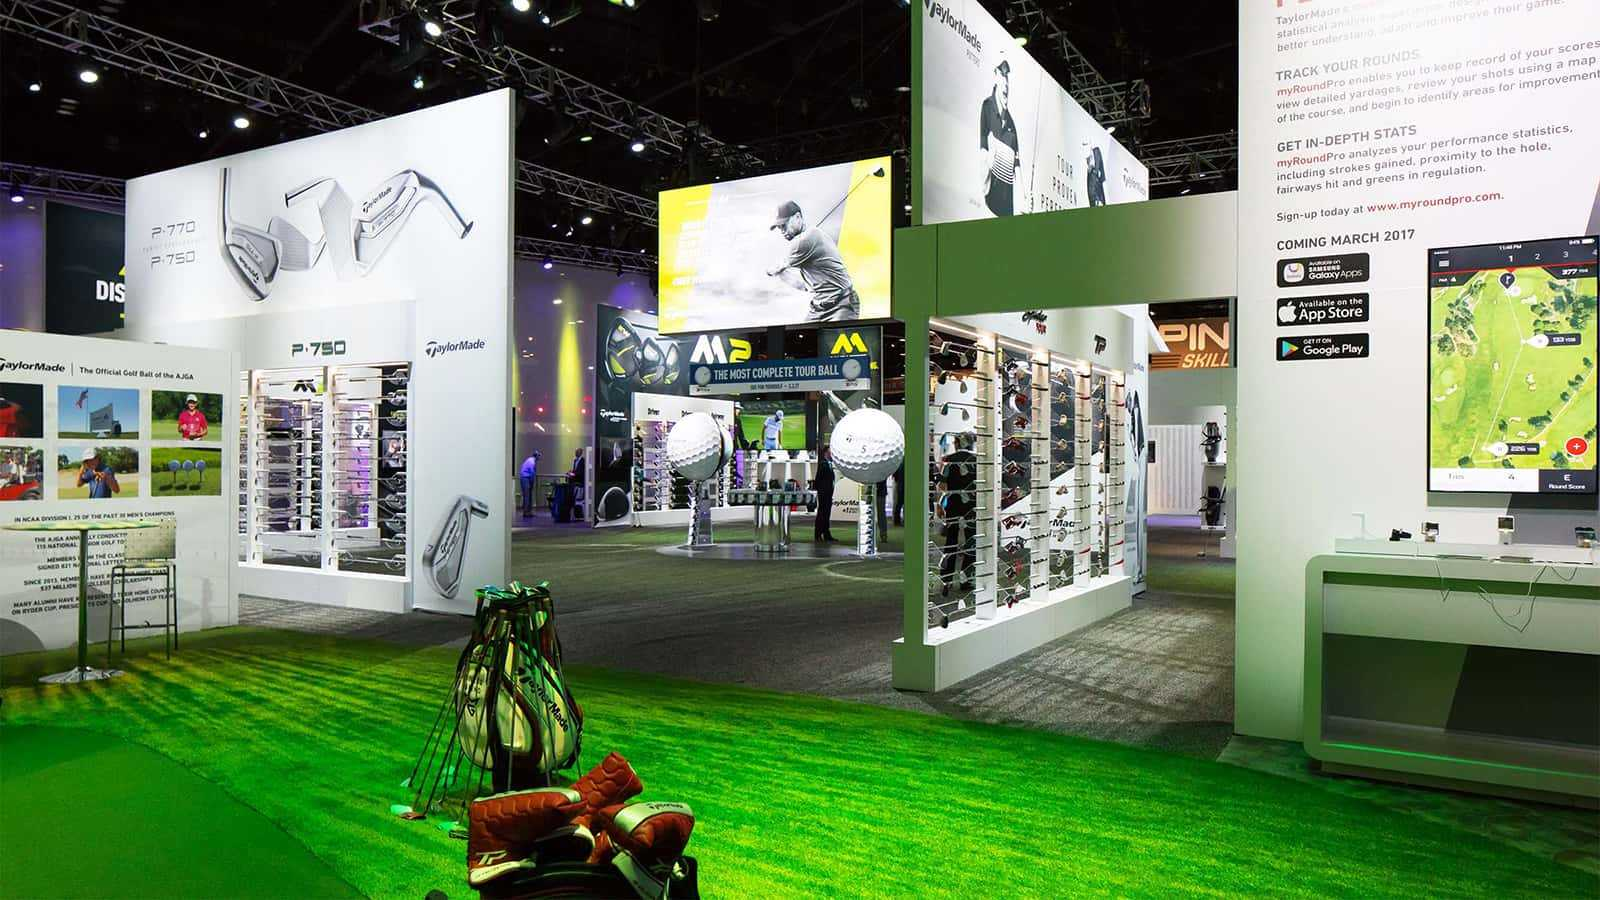 On the green at the TaylorMade PGA Merchandise Show 2017 experience.